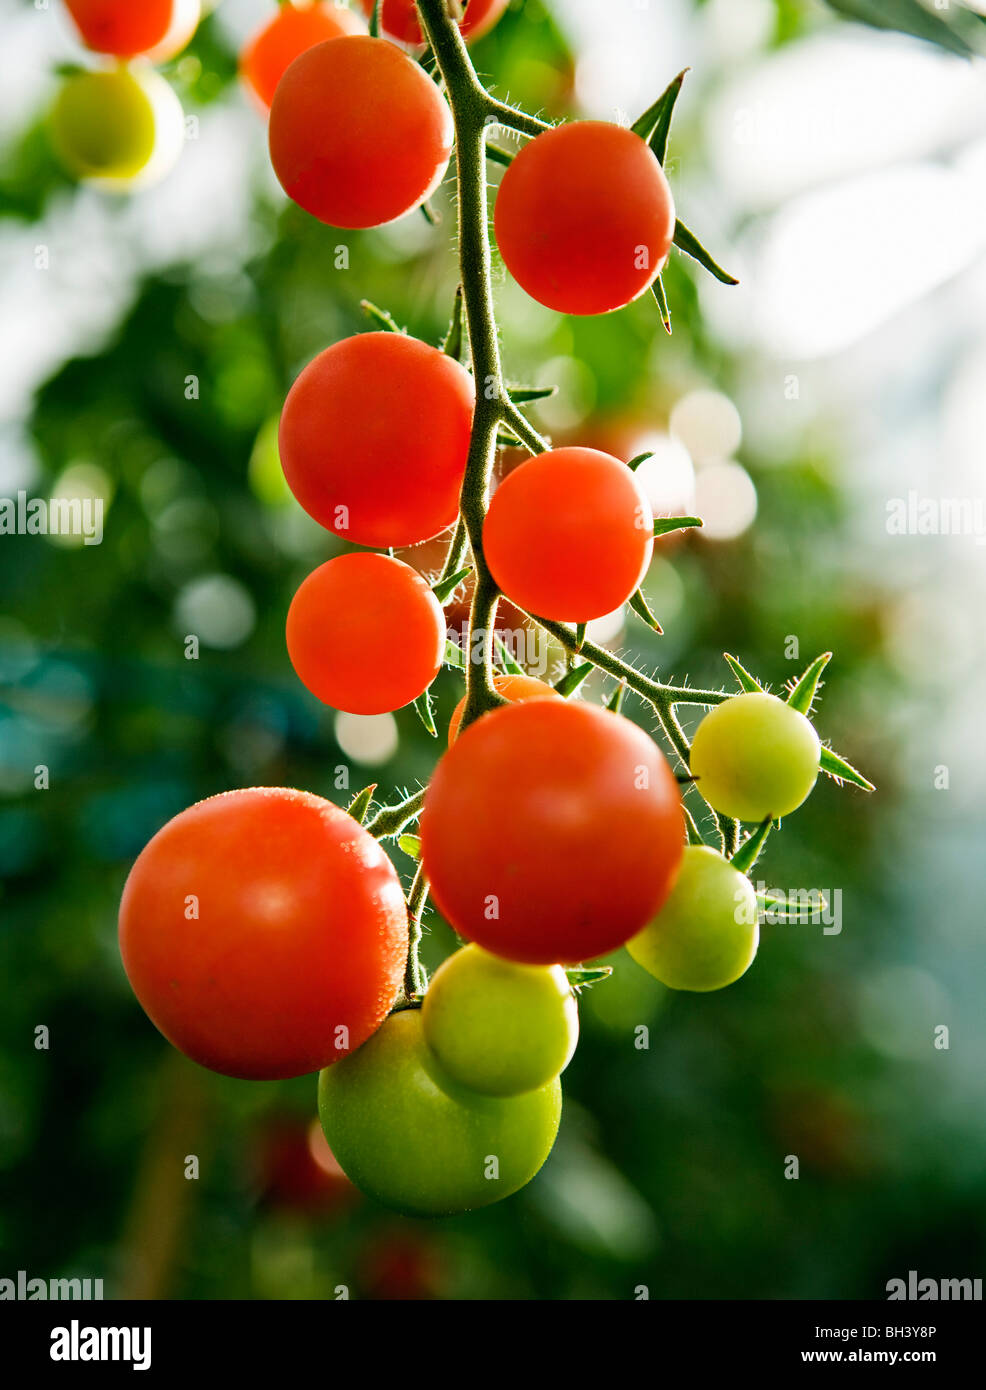 Ripening tomatoes on the stem - Stock Image